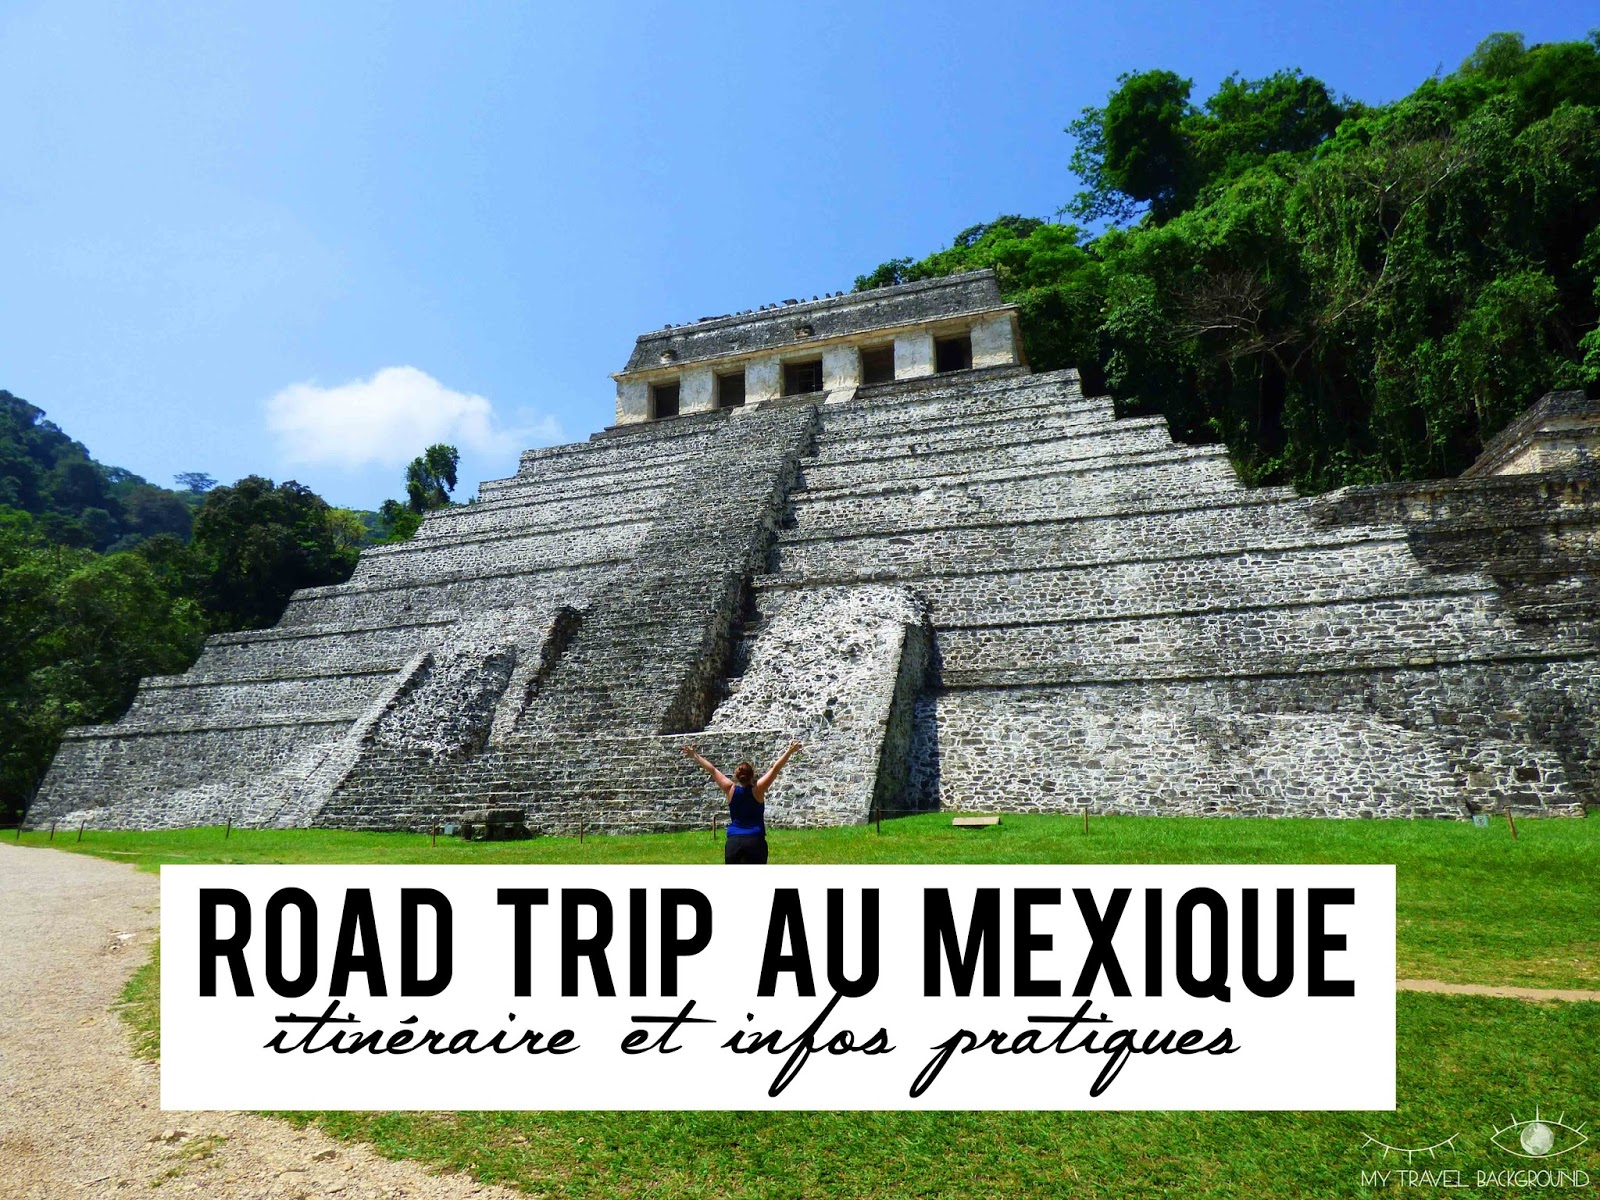 My Travel Background : Road Trip au Mexique, itinéraire et infos pratiques